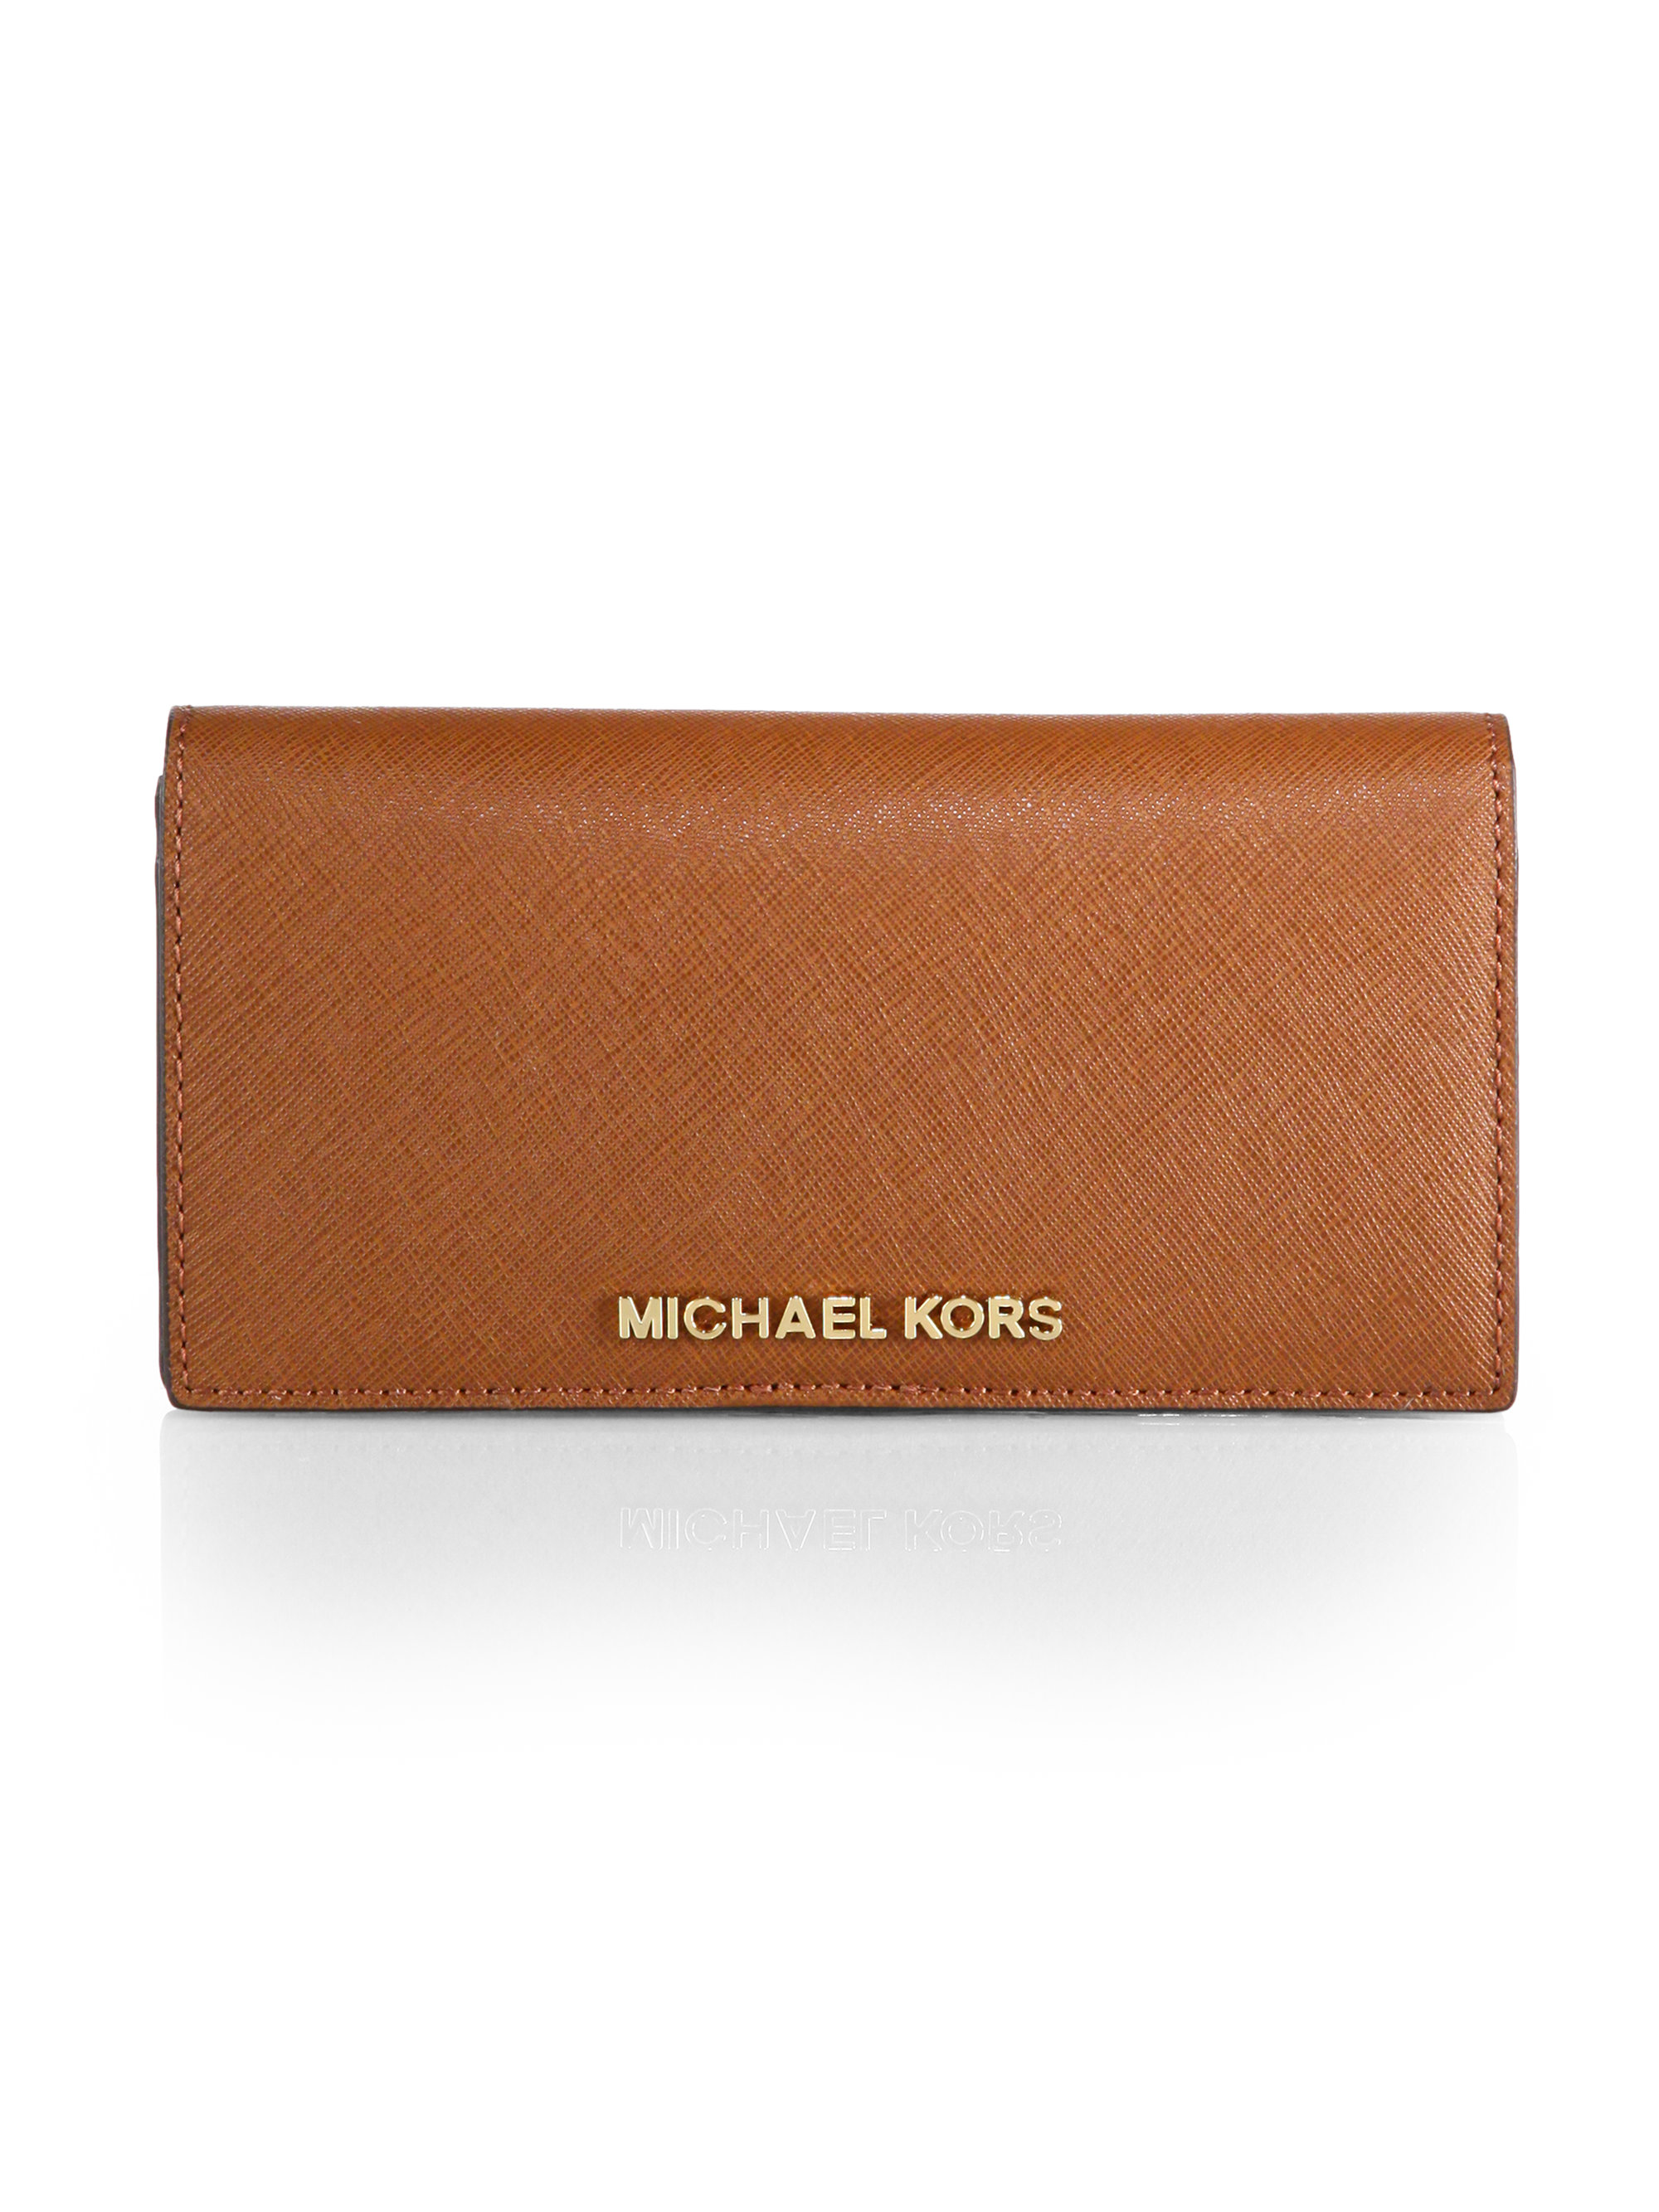 0531a25d9b74 Michael Kors Bifold Wallet Womens | Stanford Center for Opportunity ...